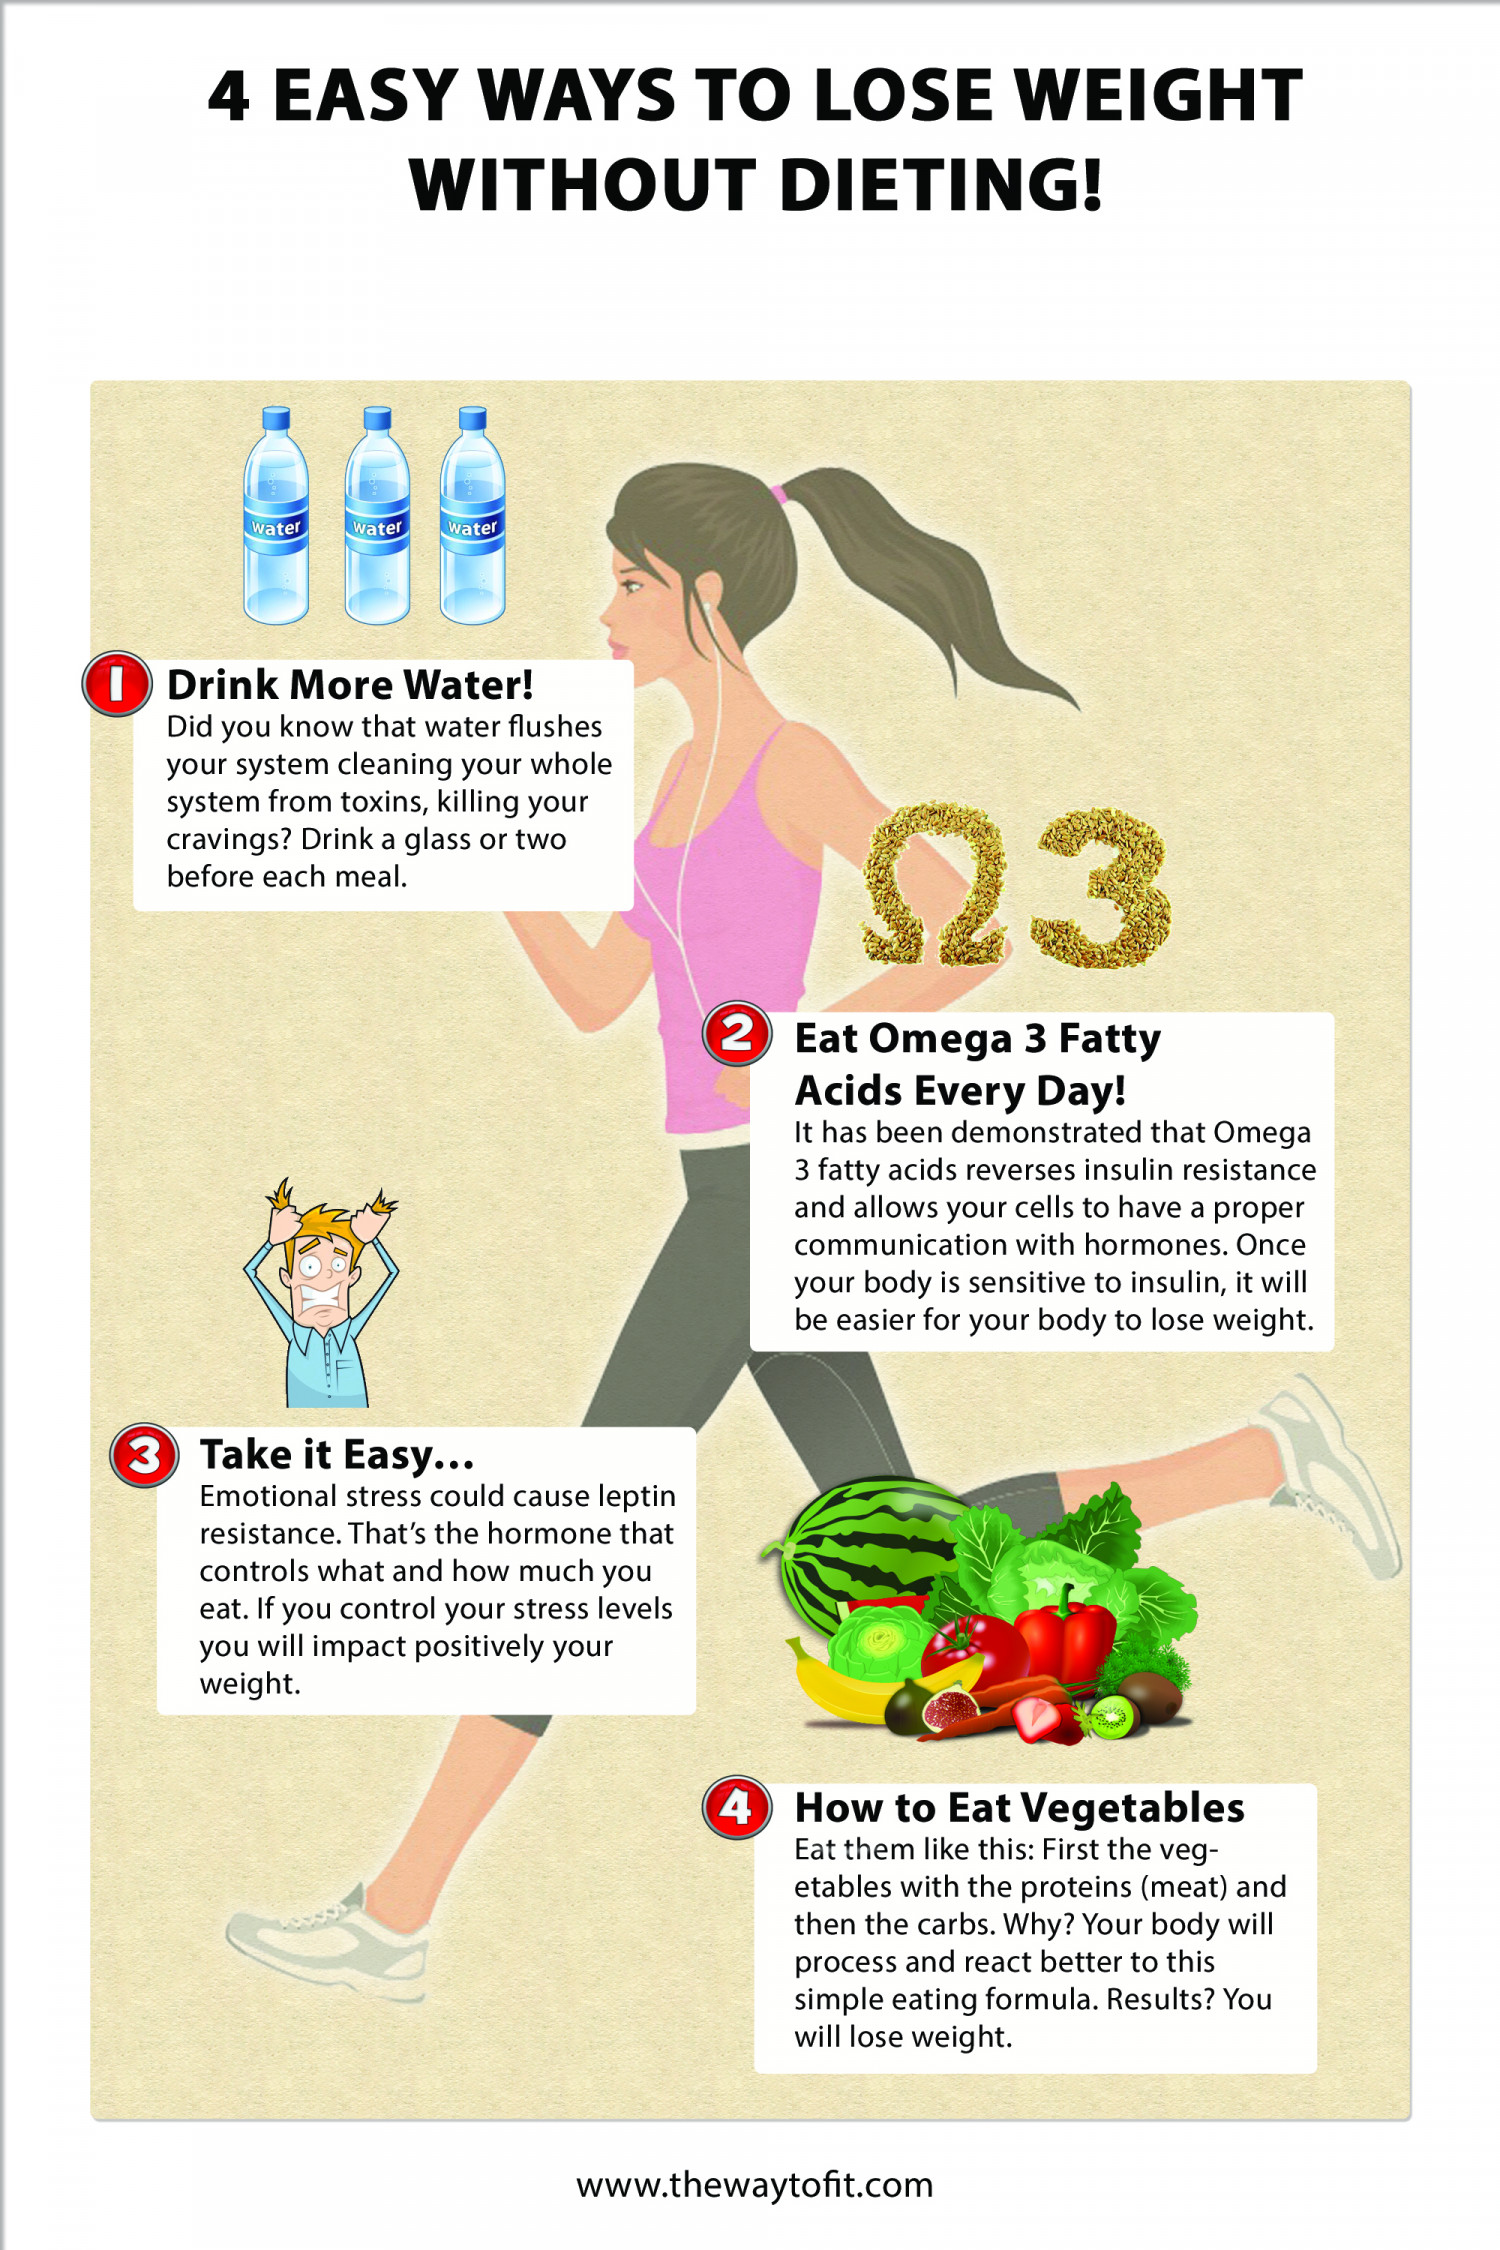 4-easy-ways-to-lose-weight-without-dieti